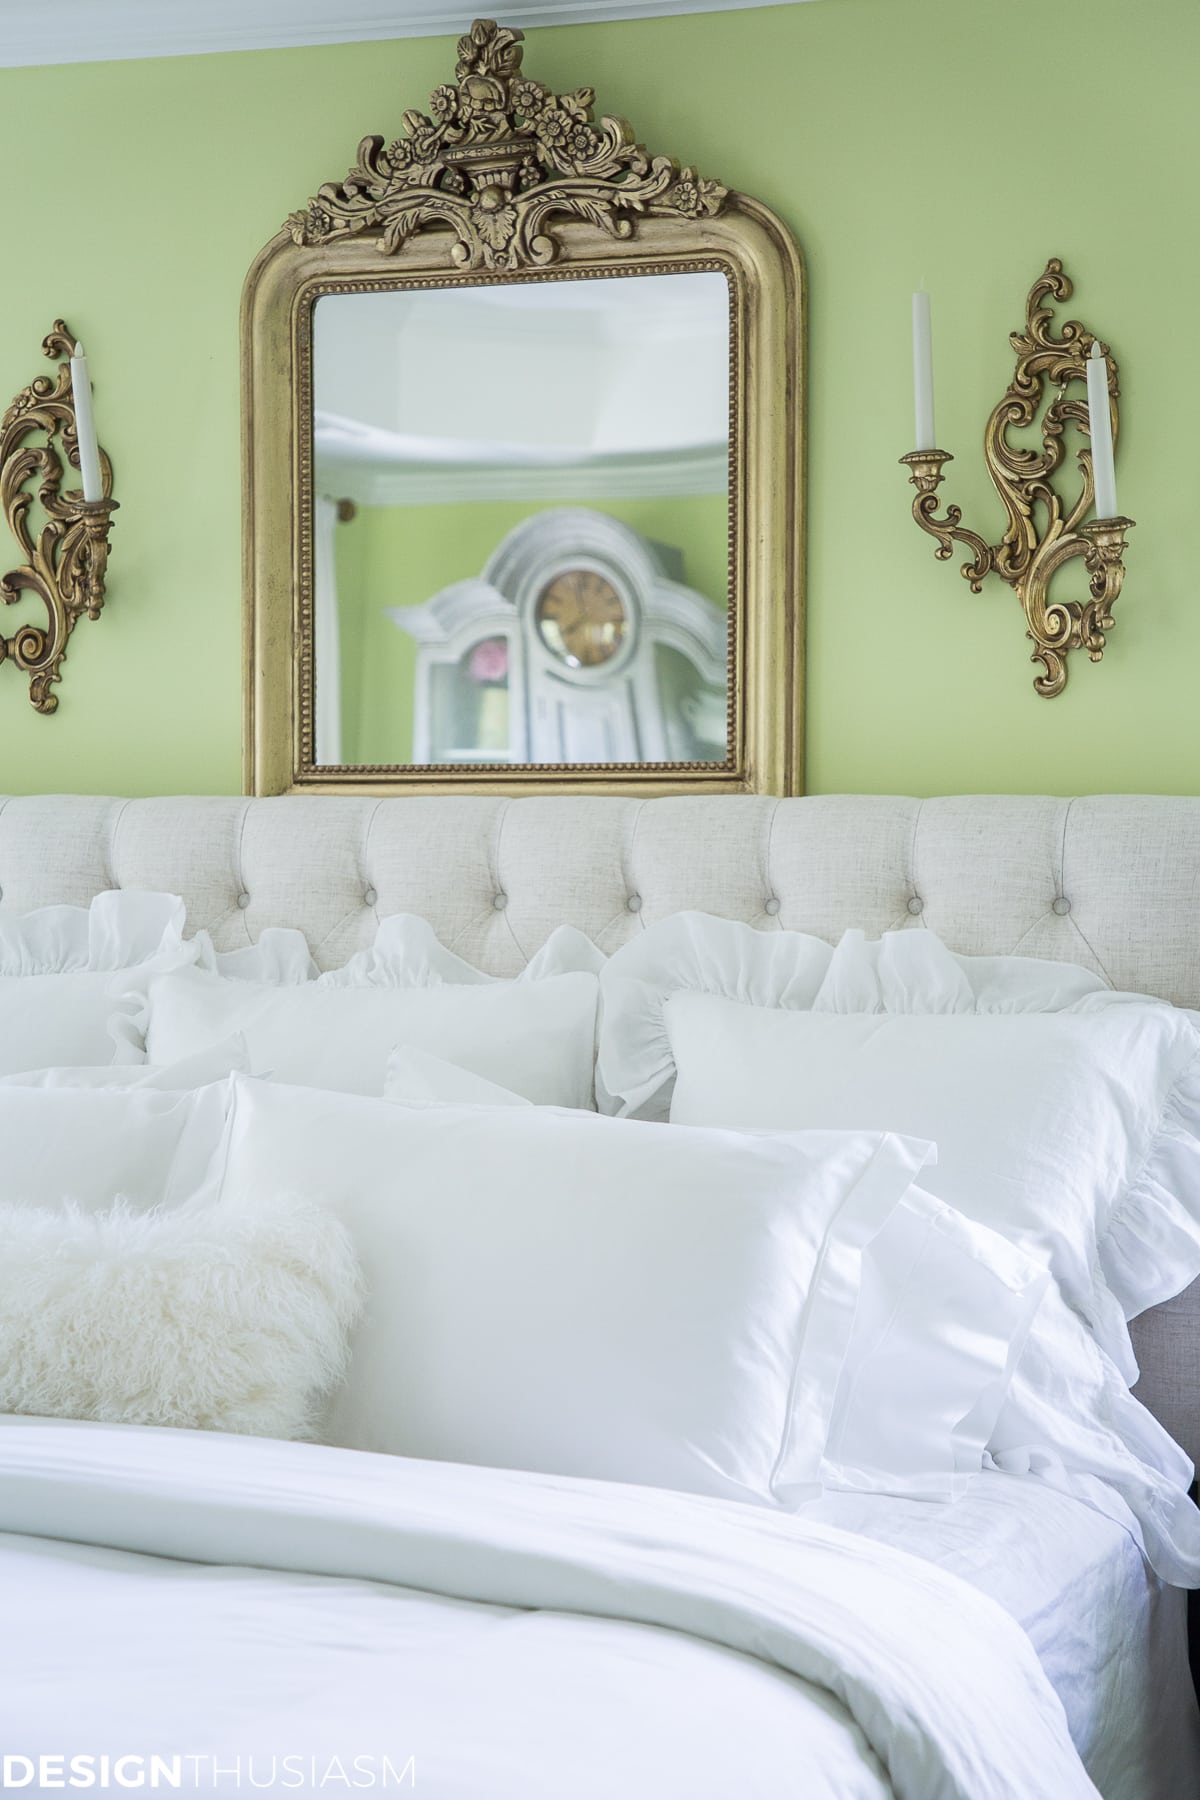 decorative mirrors add french style to a master bedroom